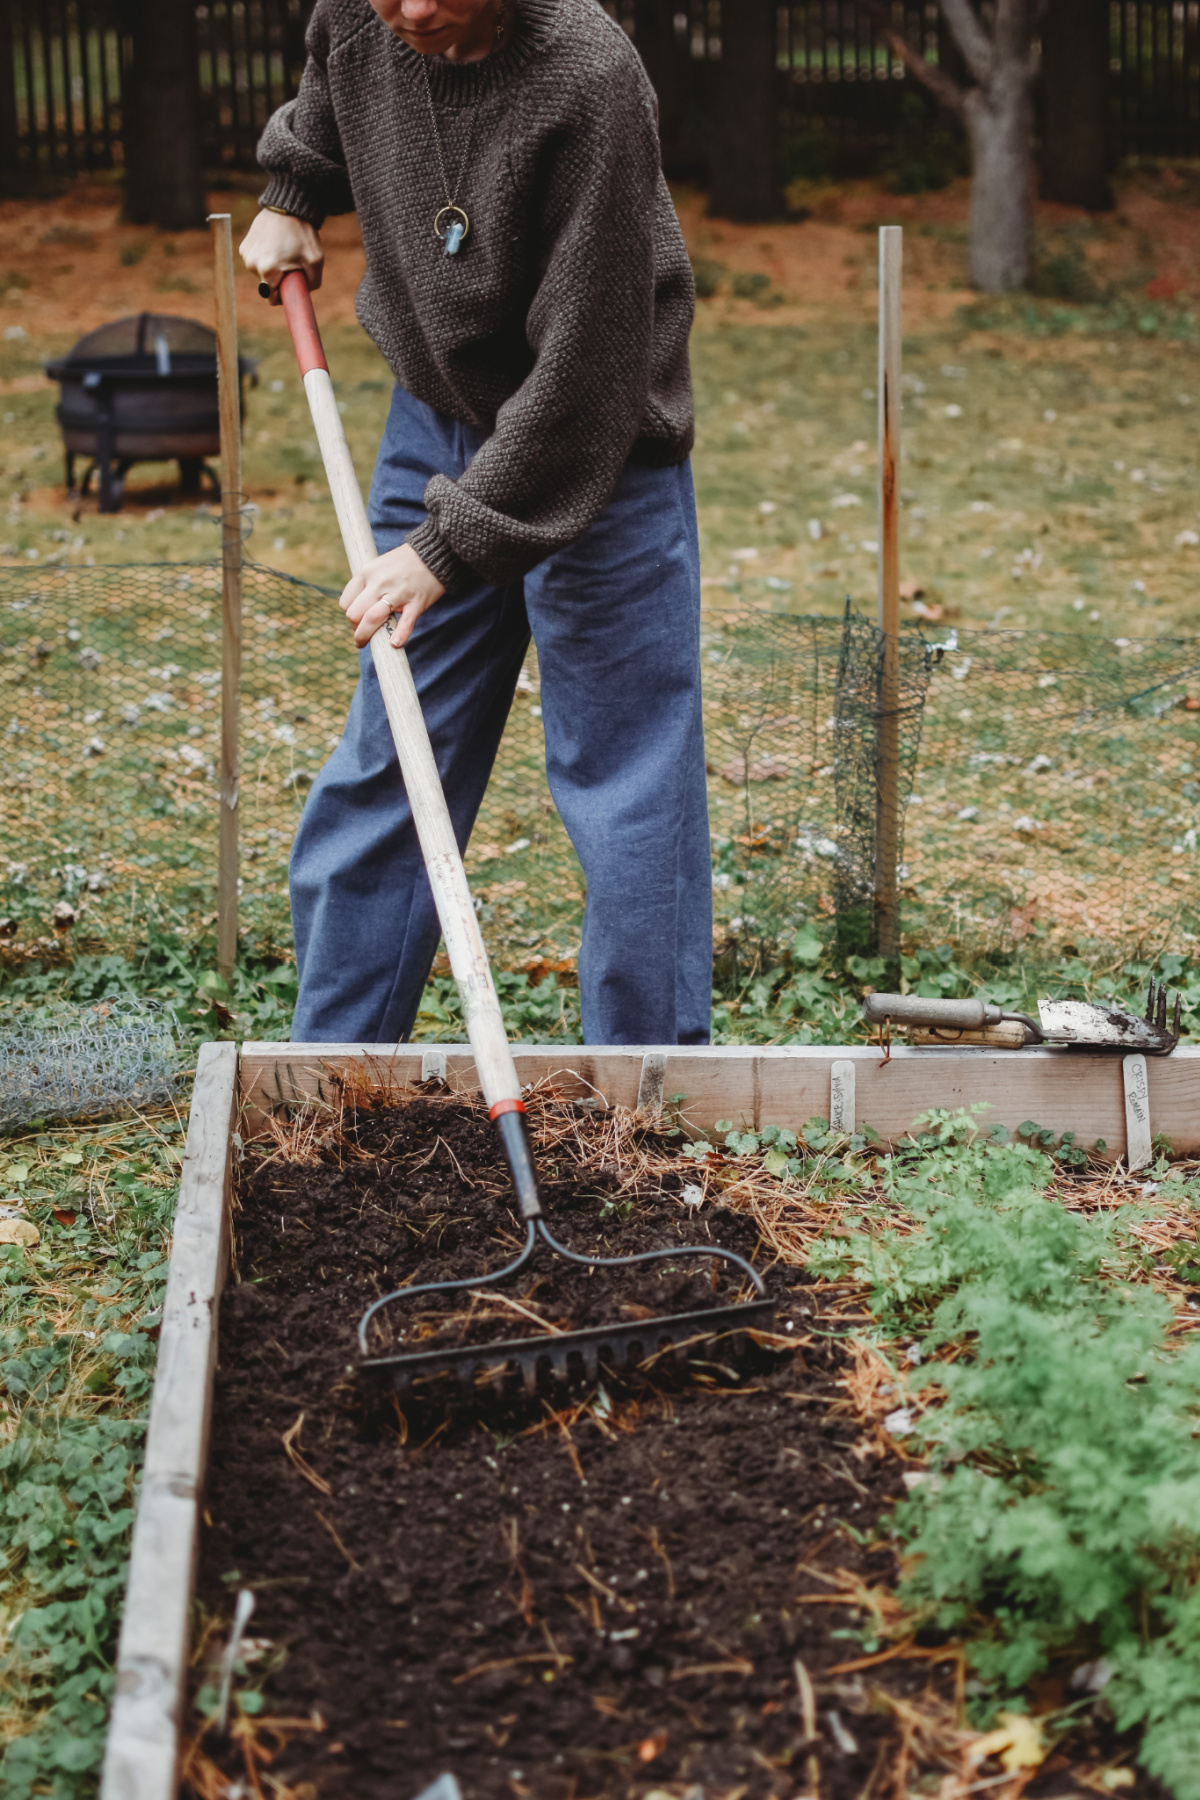 woman digging in the soil with a rake